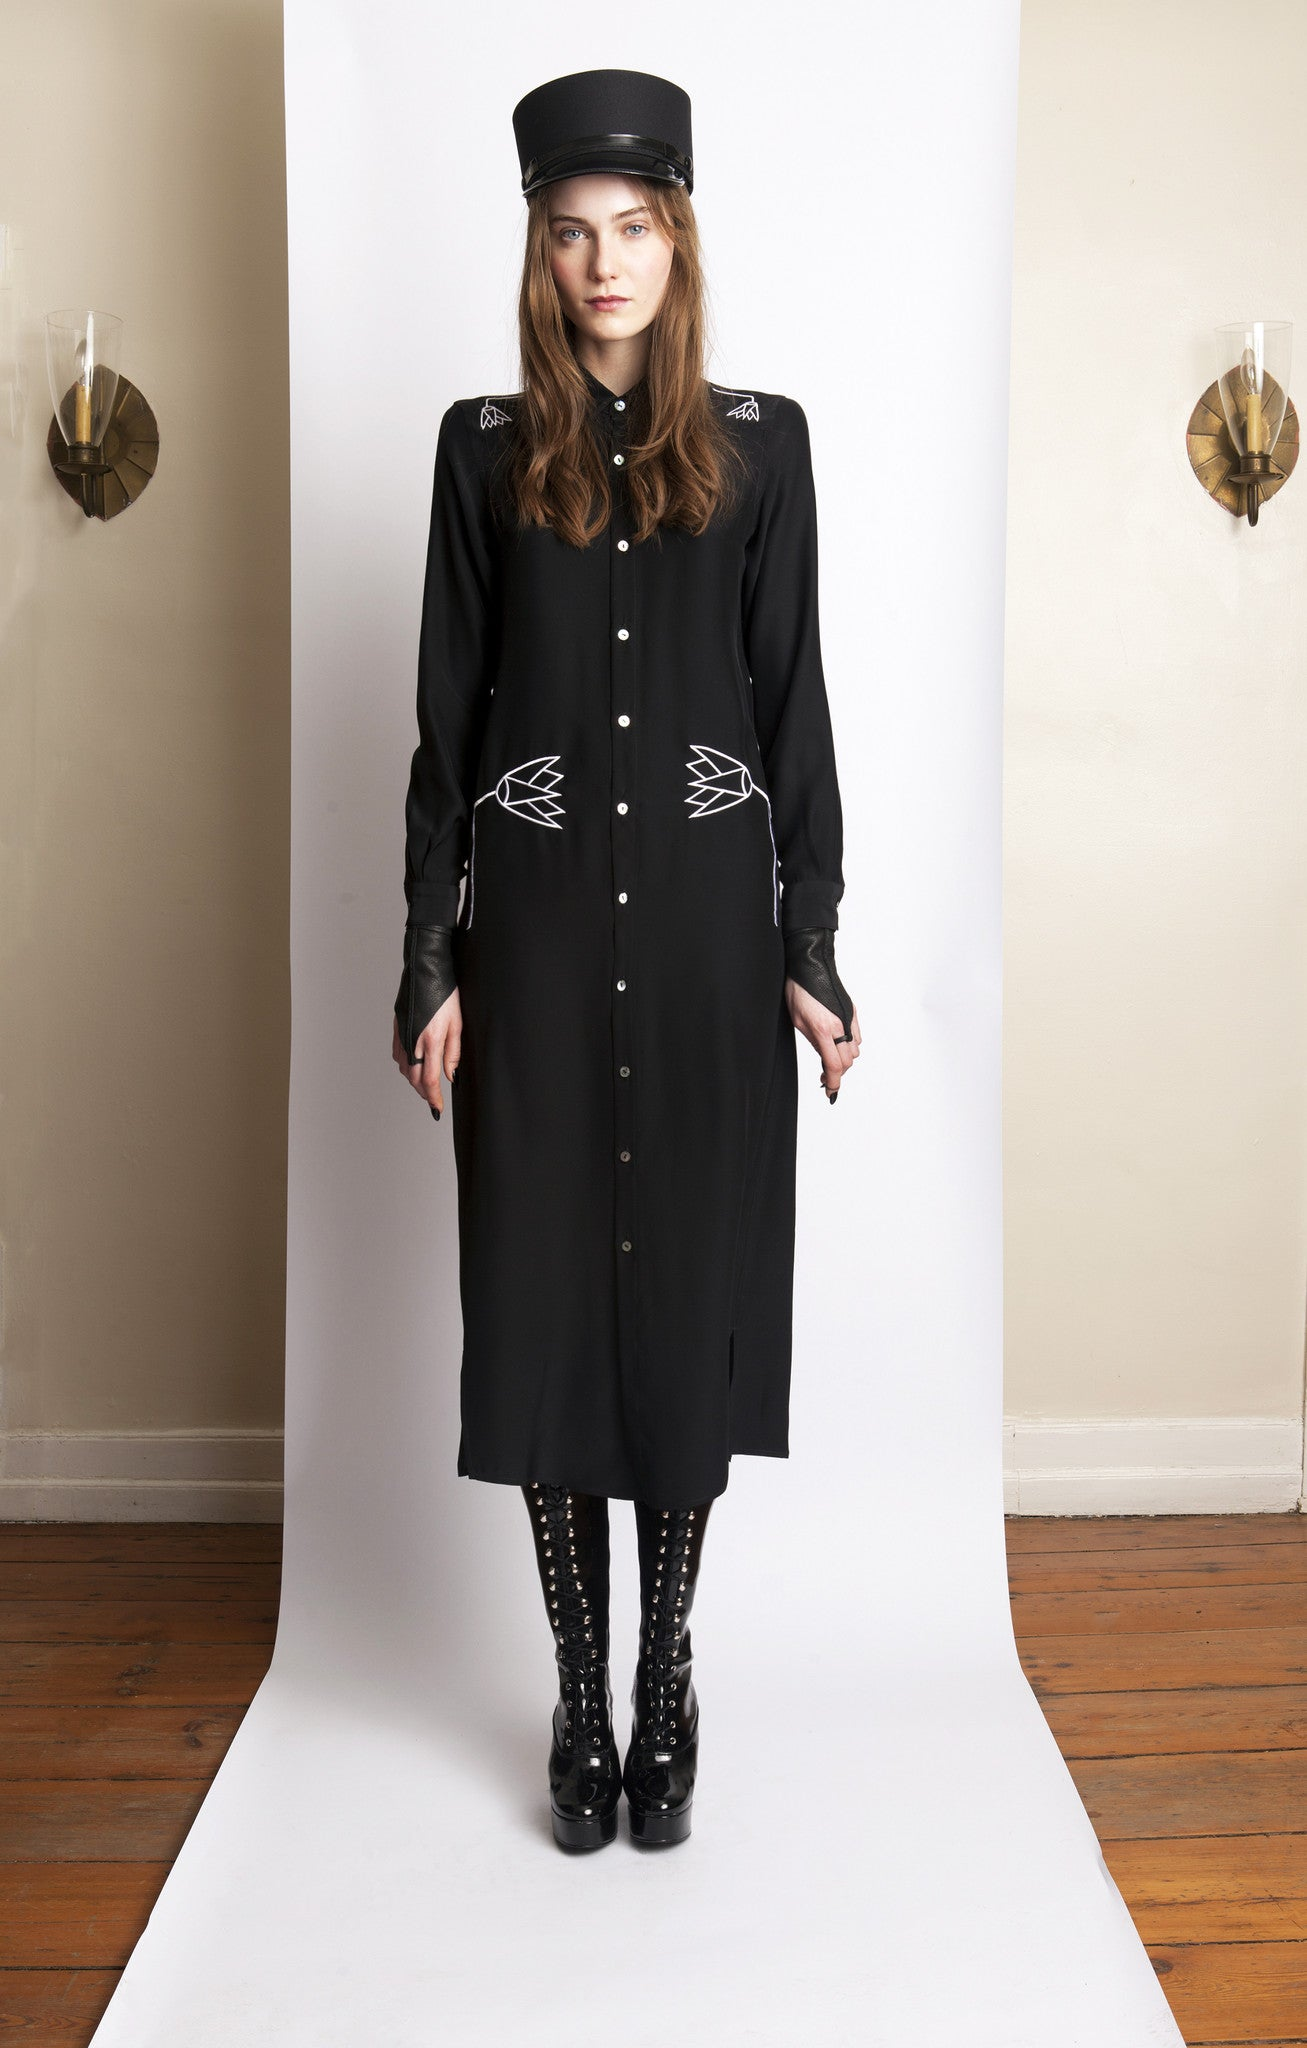 Basia IMG Model Wendy Nicol Clothing Fashion Designer Ready to Wear Fashion Runway Show AW13 Witch Lessons Embroidered Egyptian Lotus button up long sleeve silk charmeuse Blouse Dress Black Handmade in NYC New york city Custom Tailoring Fitting Size Fabric Color Made to Measure